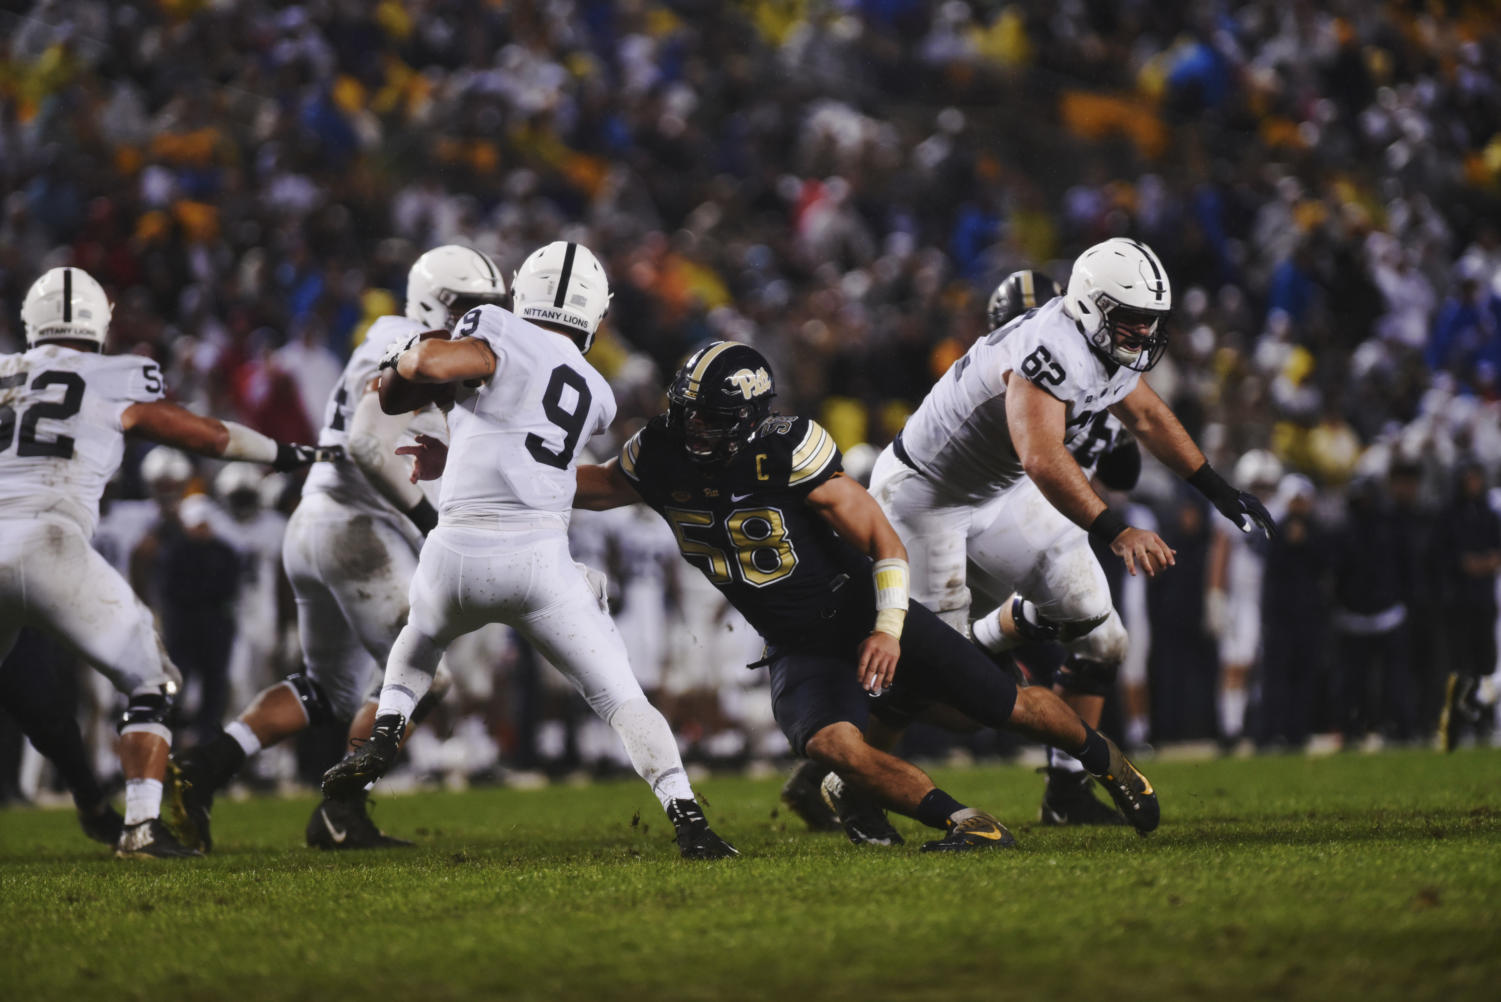 Senior captain Quintin Wirginis (58) lunges for Penn State quarterback Trace McSorley (9).